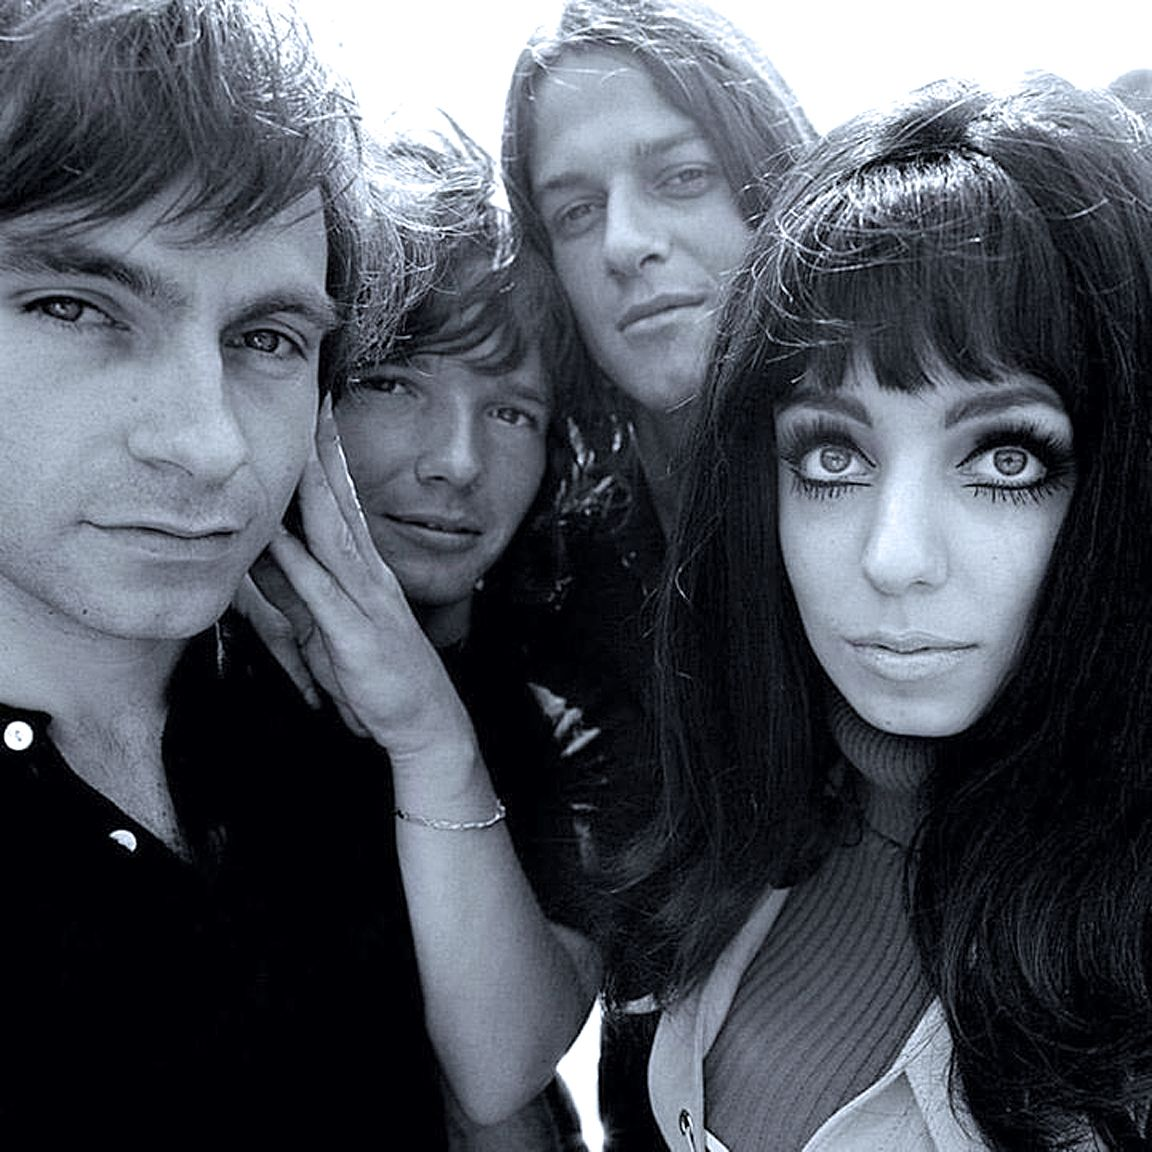 Shocking Blue - Live In Tokyo 1971 - Past Daily Backstage Weekend - Rock  Without Borders - Past Daily: News, History, Music And An Enormous Sound  Archive. | Shocking blue, Mariska veres, Blues rock